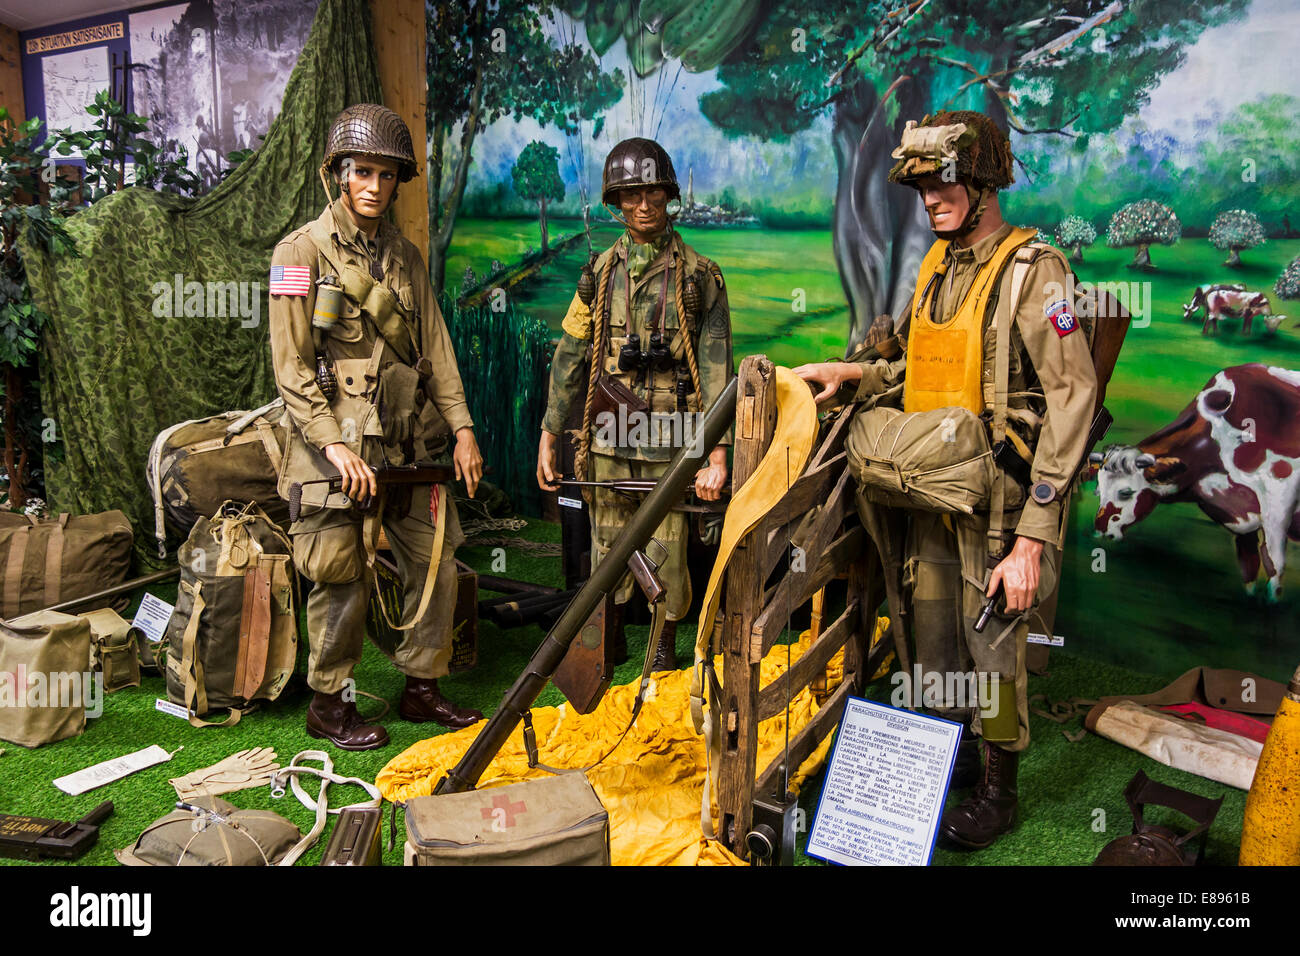 WW2 American airborne soldiers uniforms and weapons, Musée Mémorial d'Omaha Beach, Saint-Laurent-sur - Stock Image